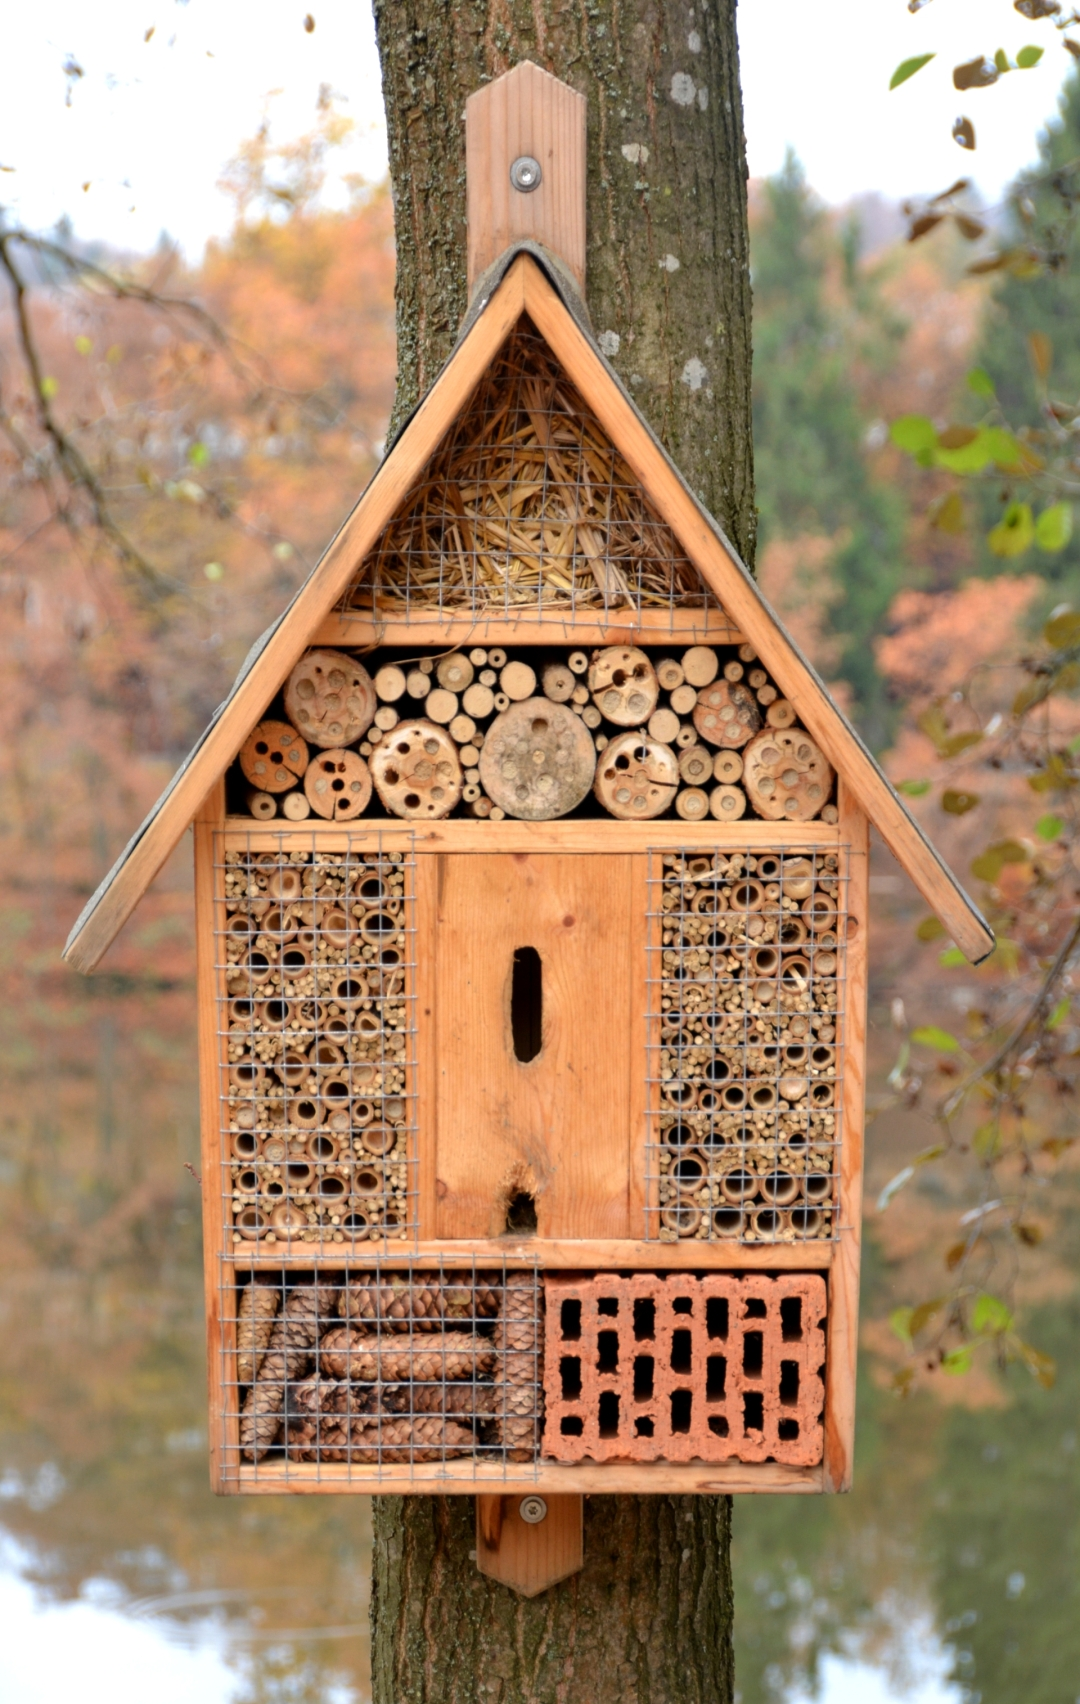 Insect_hotel,_Tittling